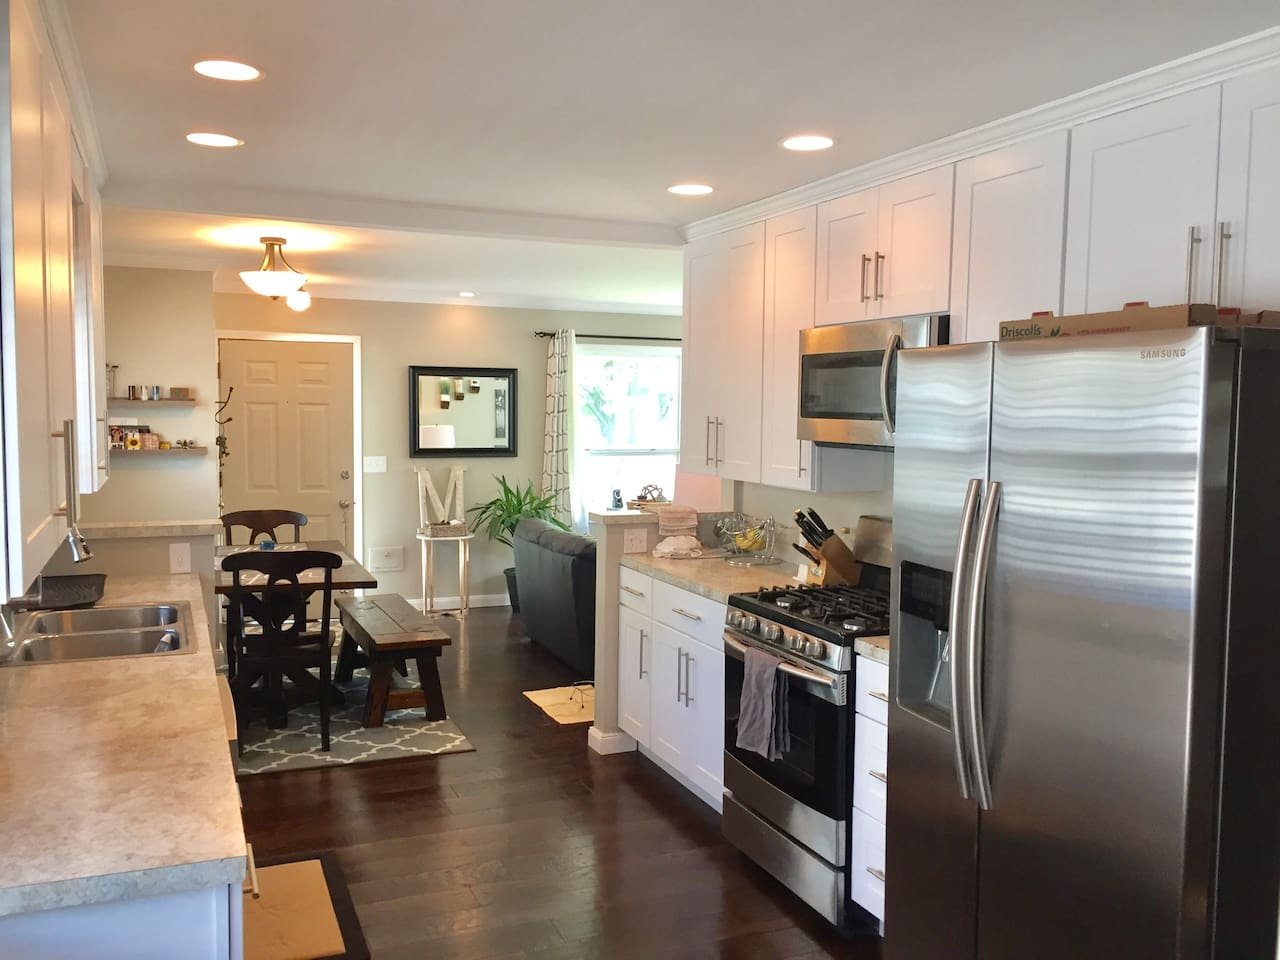 Newly remodeled single family home with a large galley kitchen, spacious living room, dark hardwood floors, brand new stainless steel appliances, brand new cabinets & hardware, hand crafted table and matching bench set.  Plenty of space for the whole family!